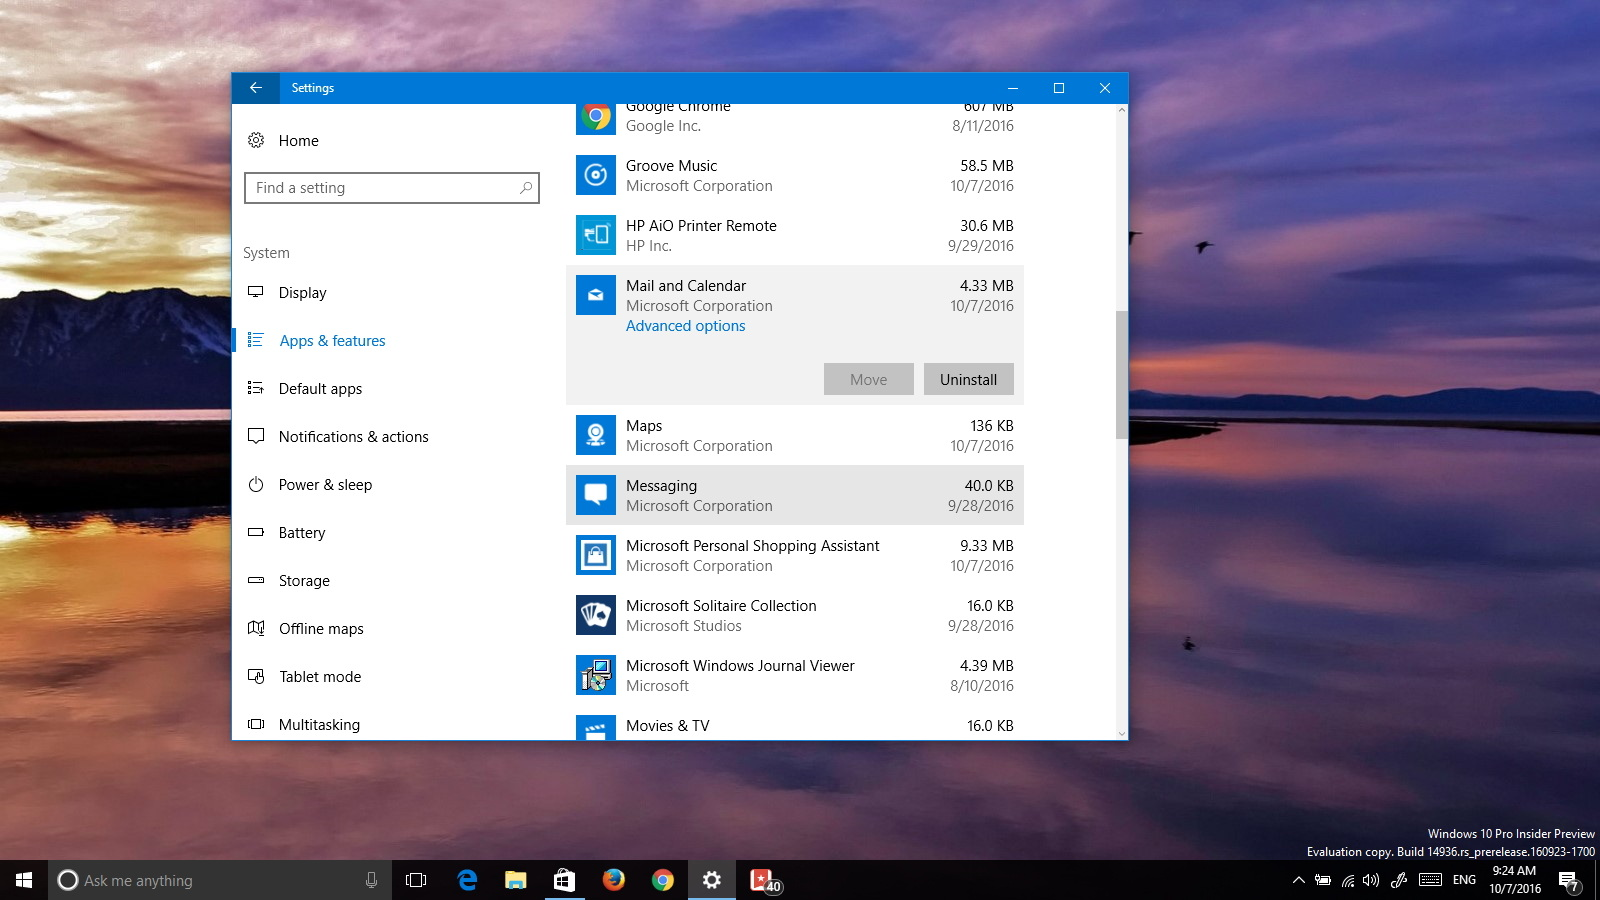 Uninstall built-in apps on Windows 10 without PowerShell commands